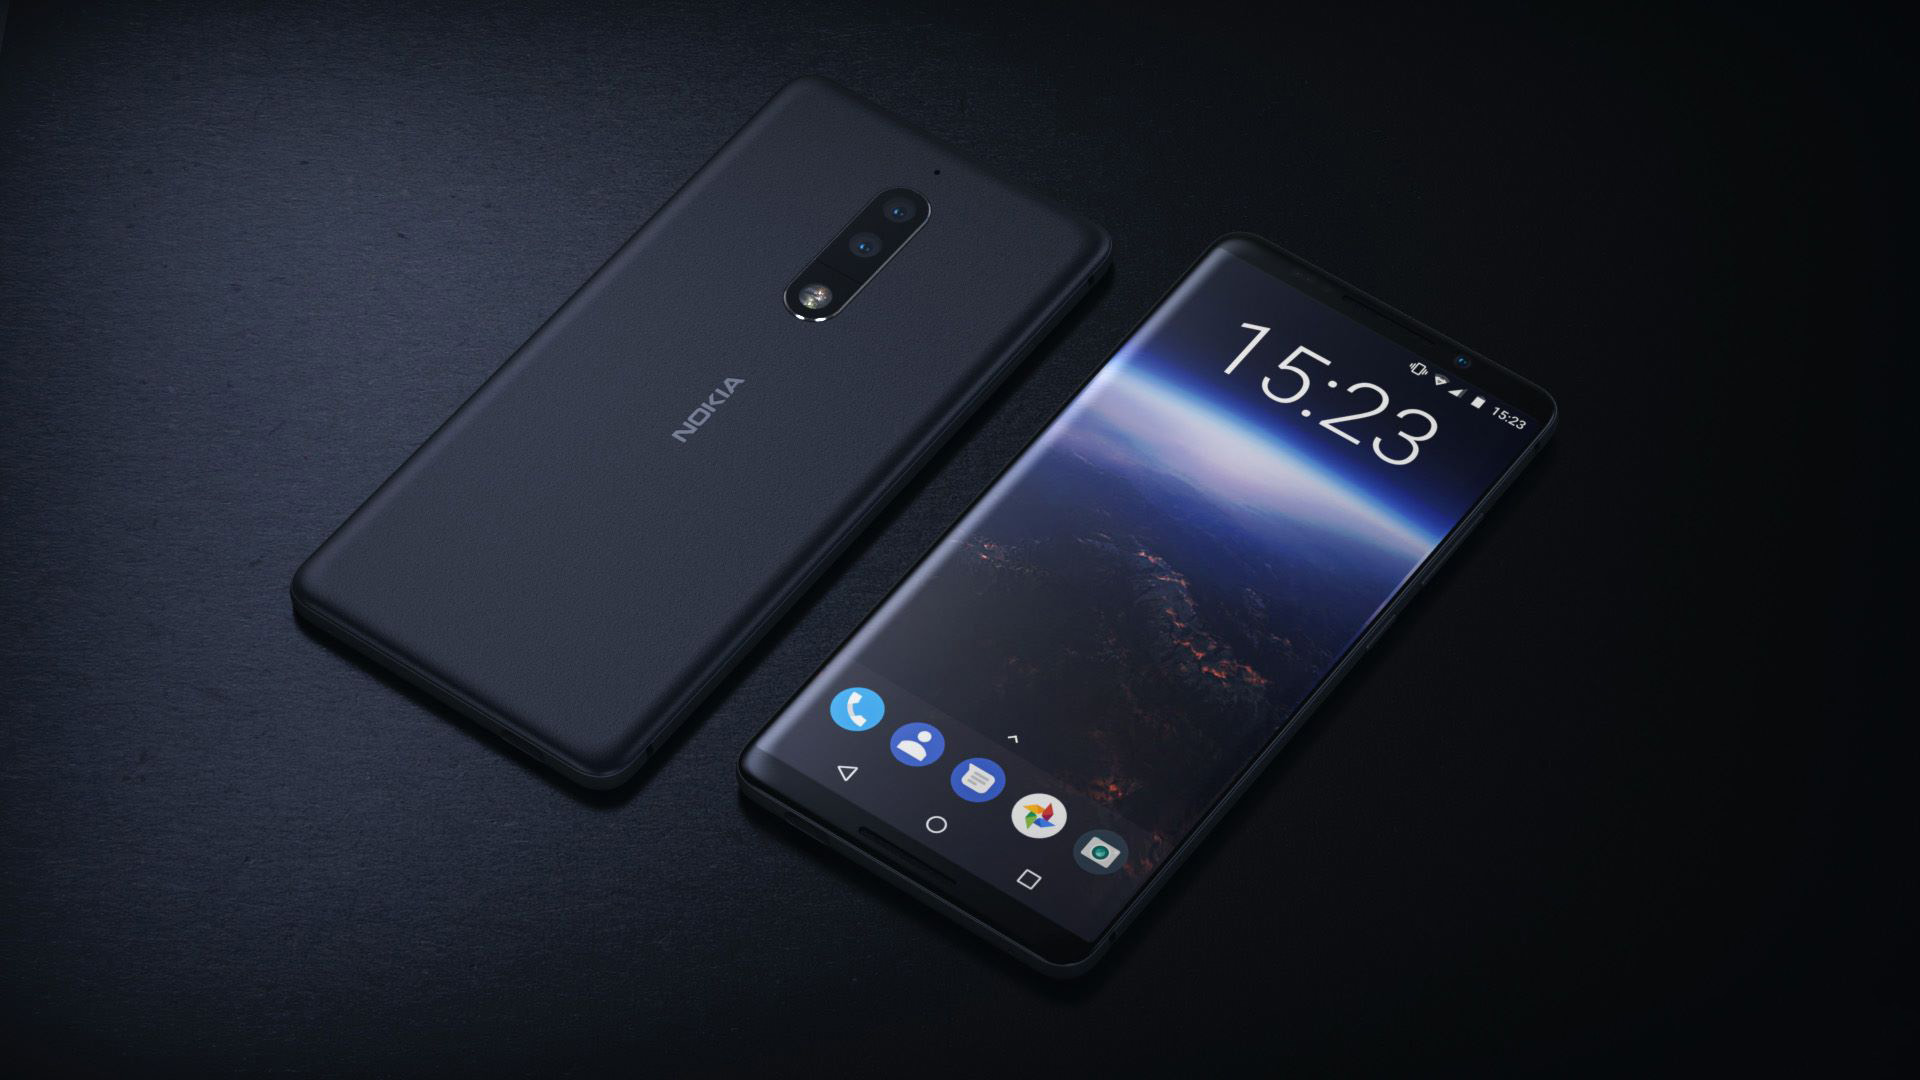 Nokia 5.1 Plus unboxing & design comparison vs Nokia 6.1 Plus